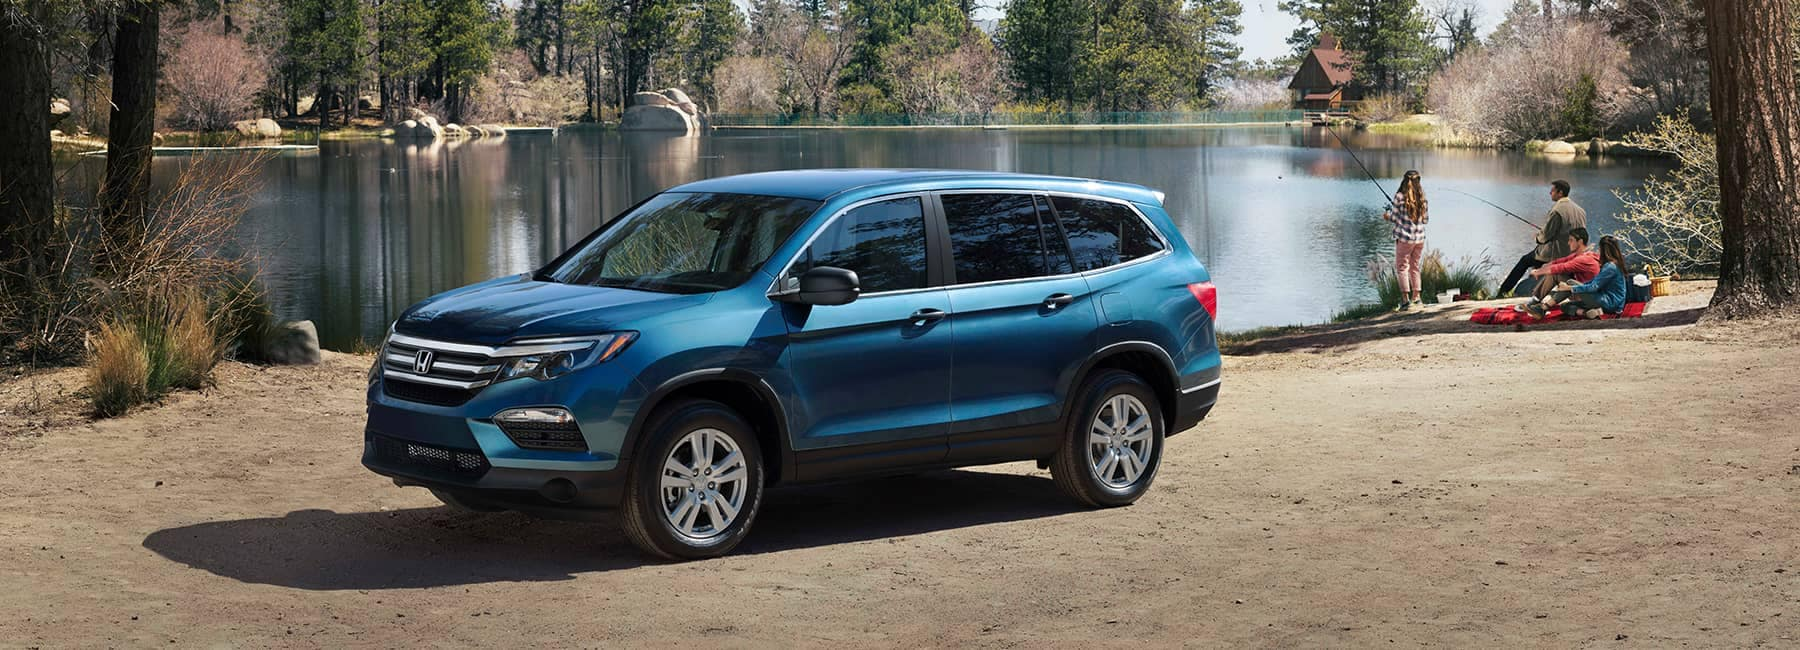 2018 Honda Pilot Parked By a Lake